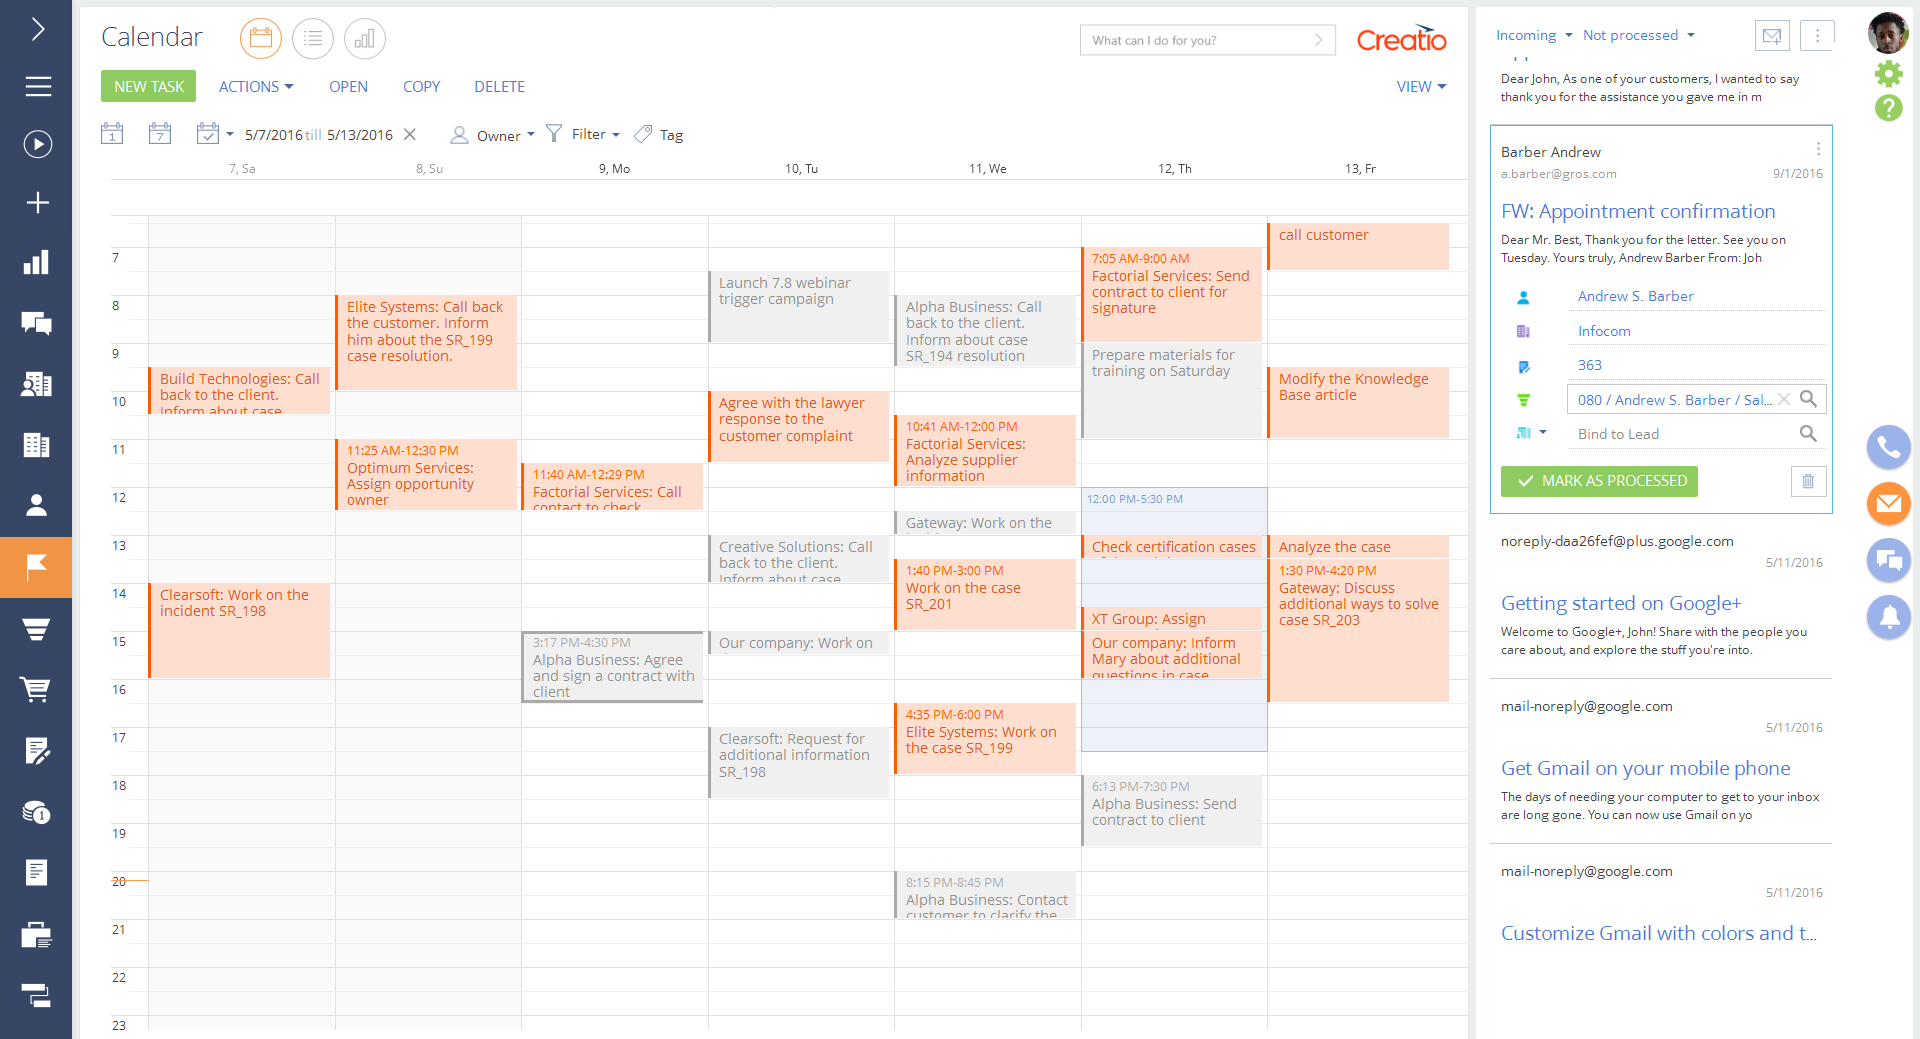 Calendar view - activities - Creatio for Higher Education